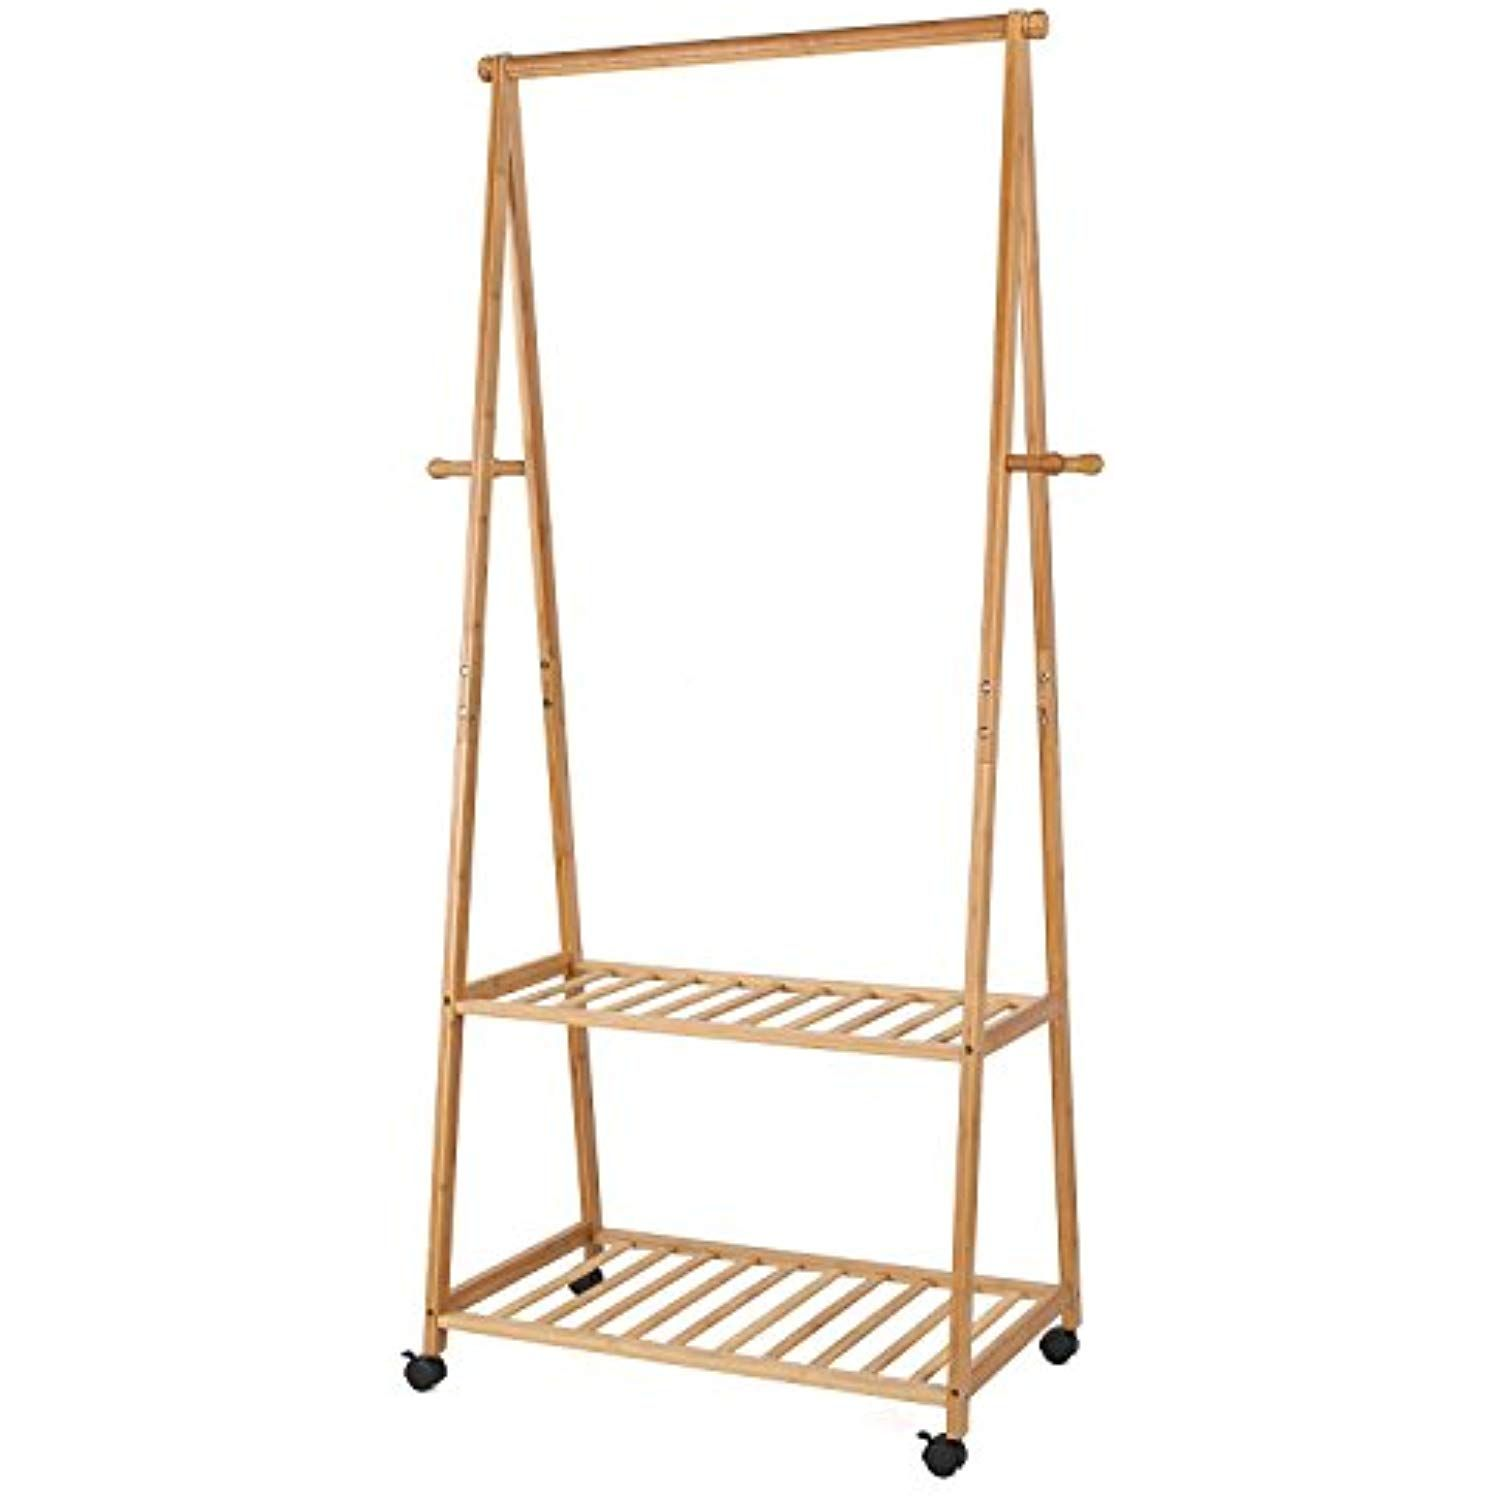 Homfa Bamboo Clothes Rack On Wheels Rolling Garment Rack With 2 Tire Storage Shelves And 4 Coat Hooks For Shoe Rolling Garment Rack Clothing Rack Garment Racks